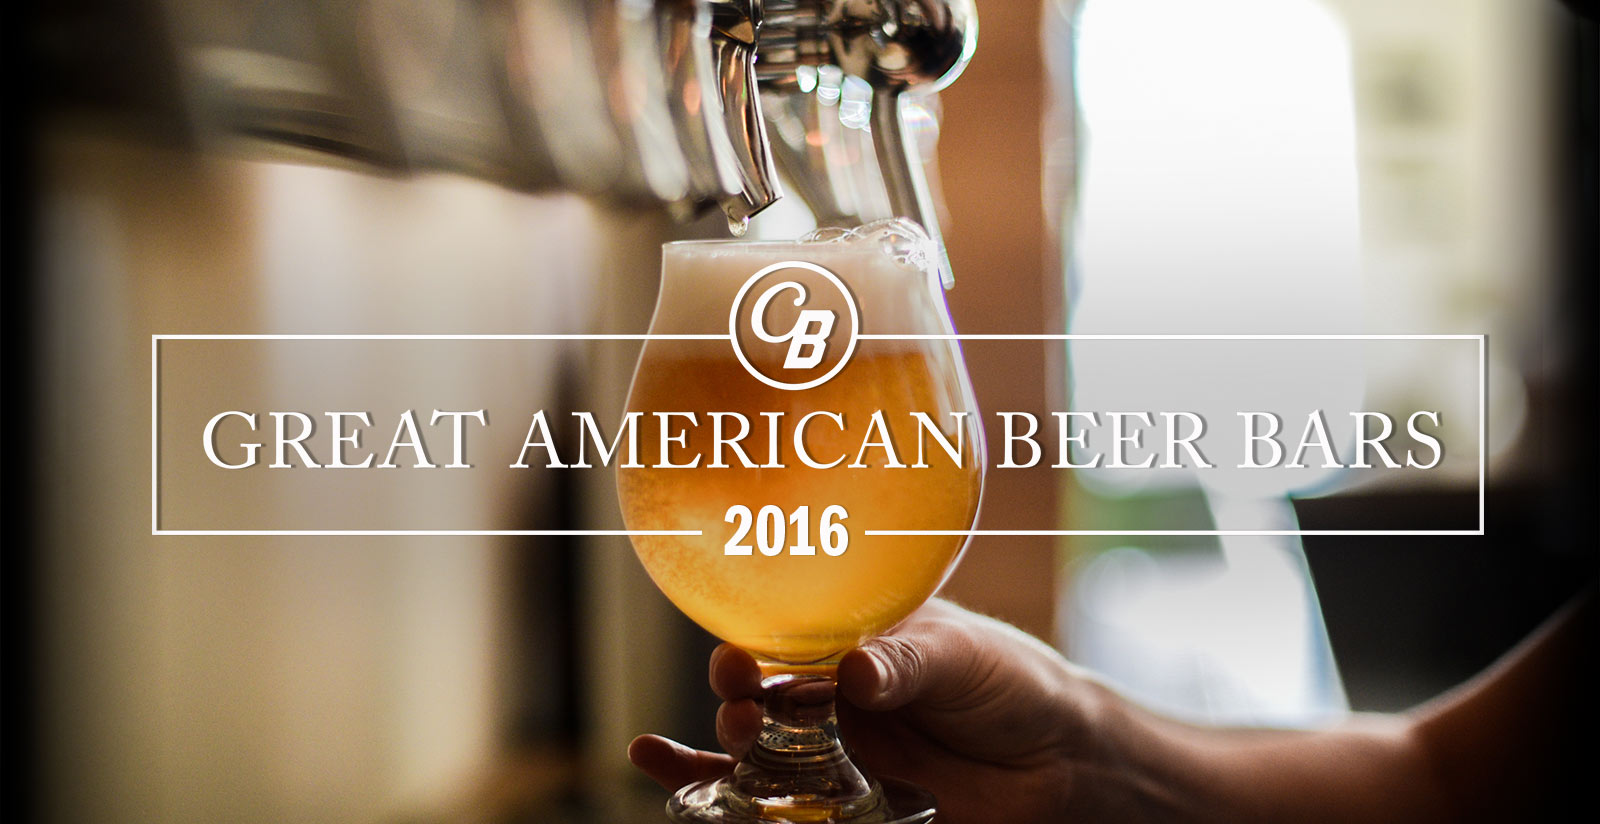 Great American Beer Bars 2016